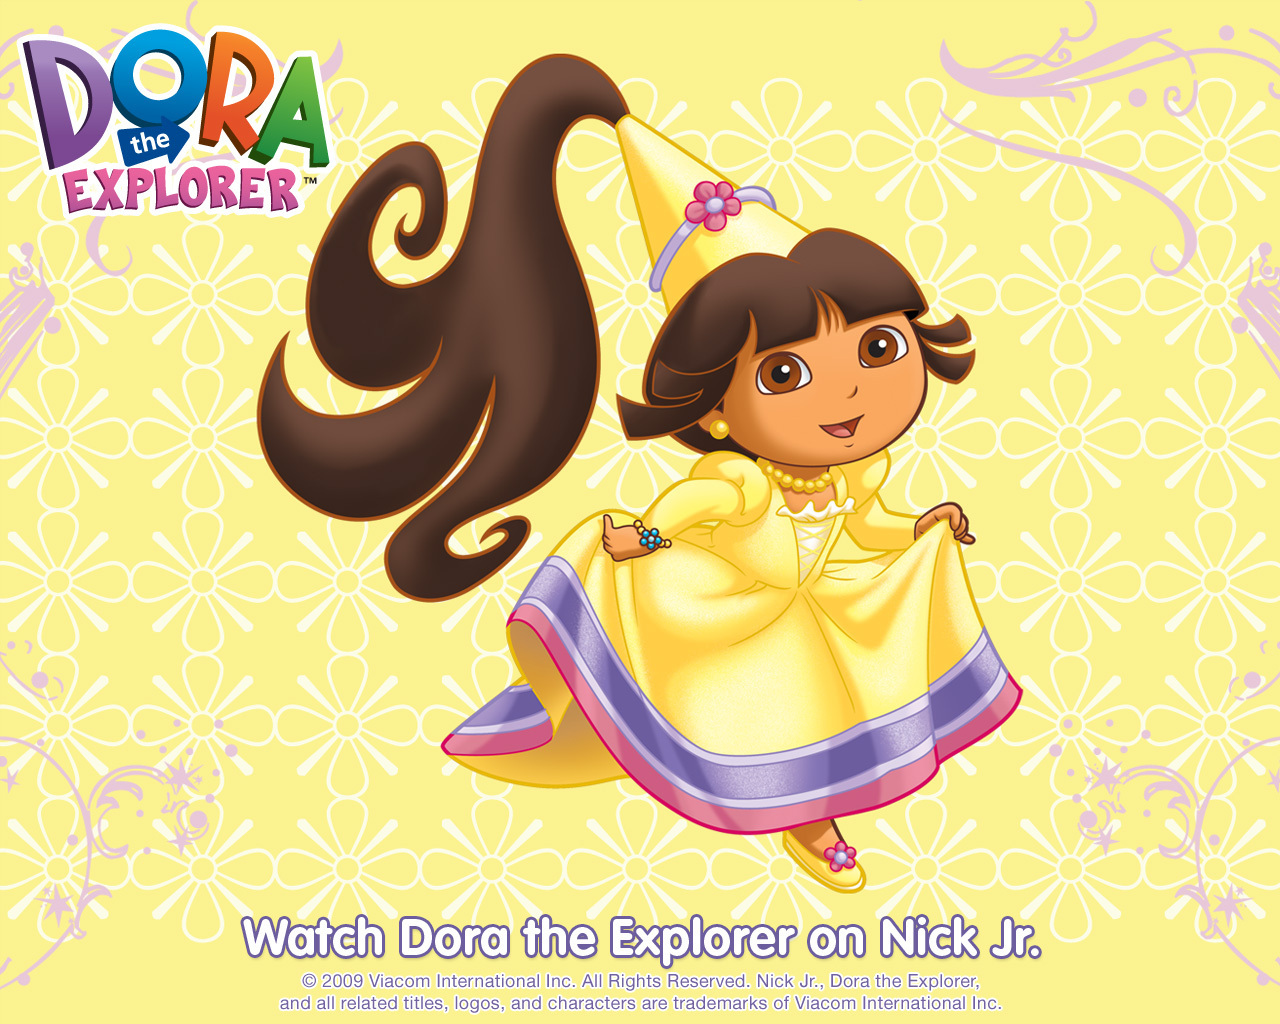 Dora the Explorer images Princess Dora Wallpaper HD 1280x1024